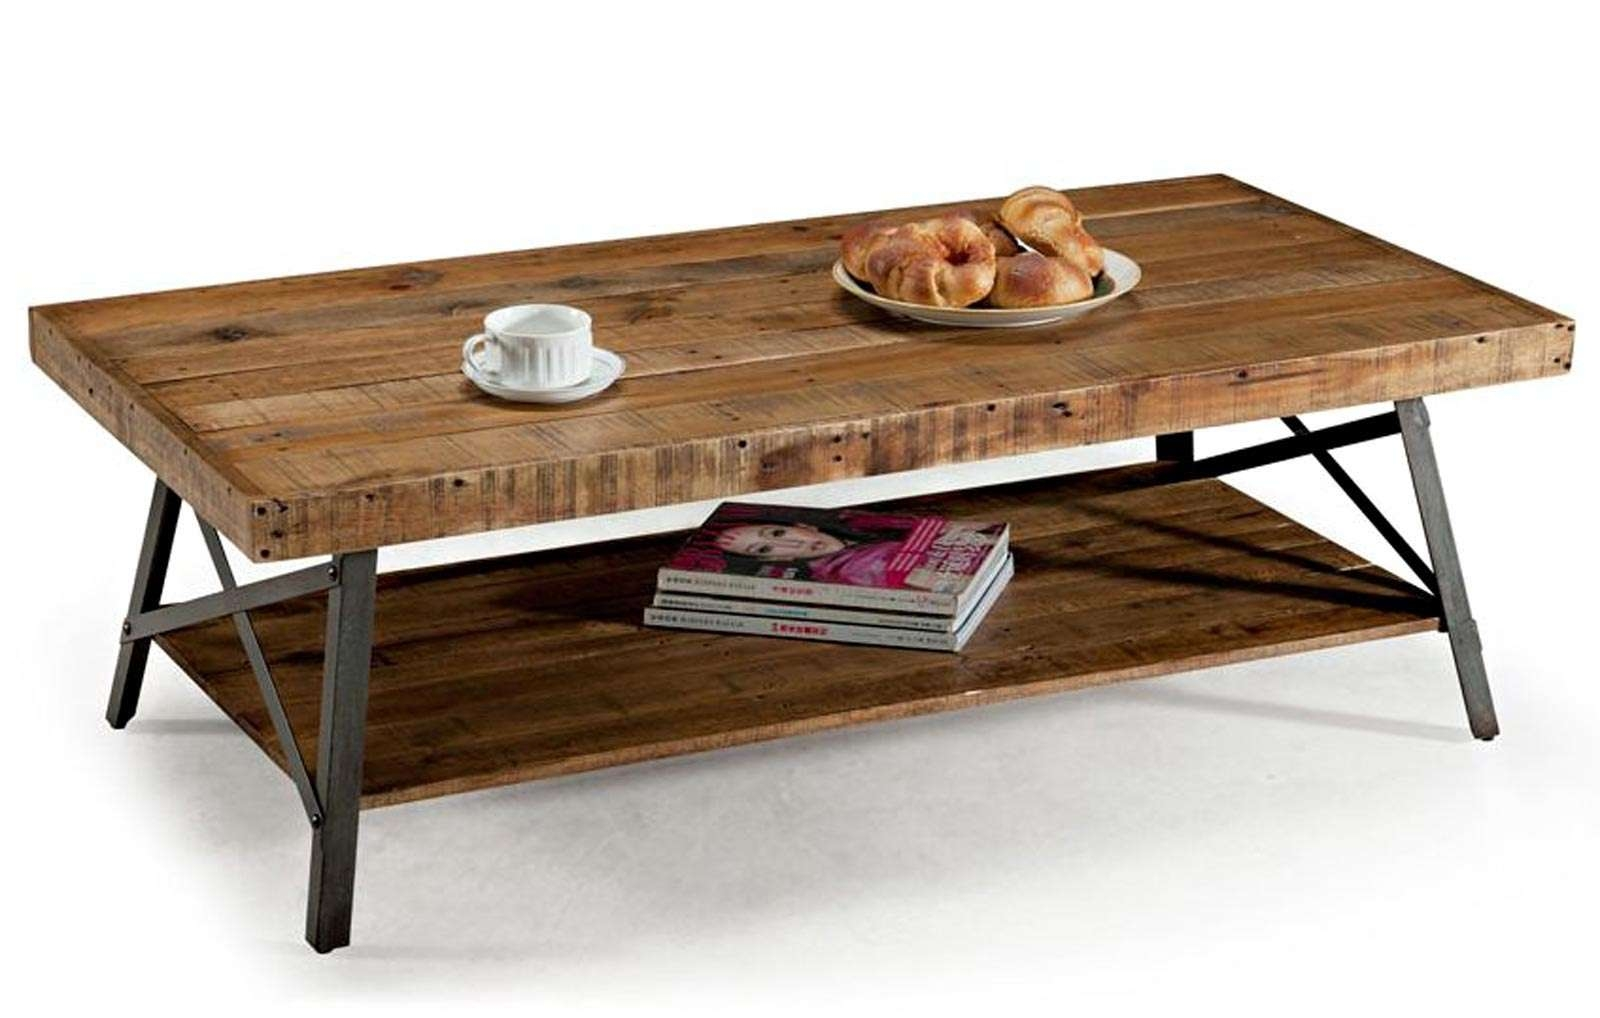 Preferred Rustic Wood Diy Coffee Tables Intended For Diy Industrial Coffee Table With Plumbing Pipe Base Rustic (View 15 of 20)